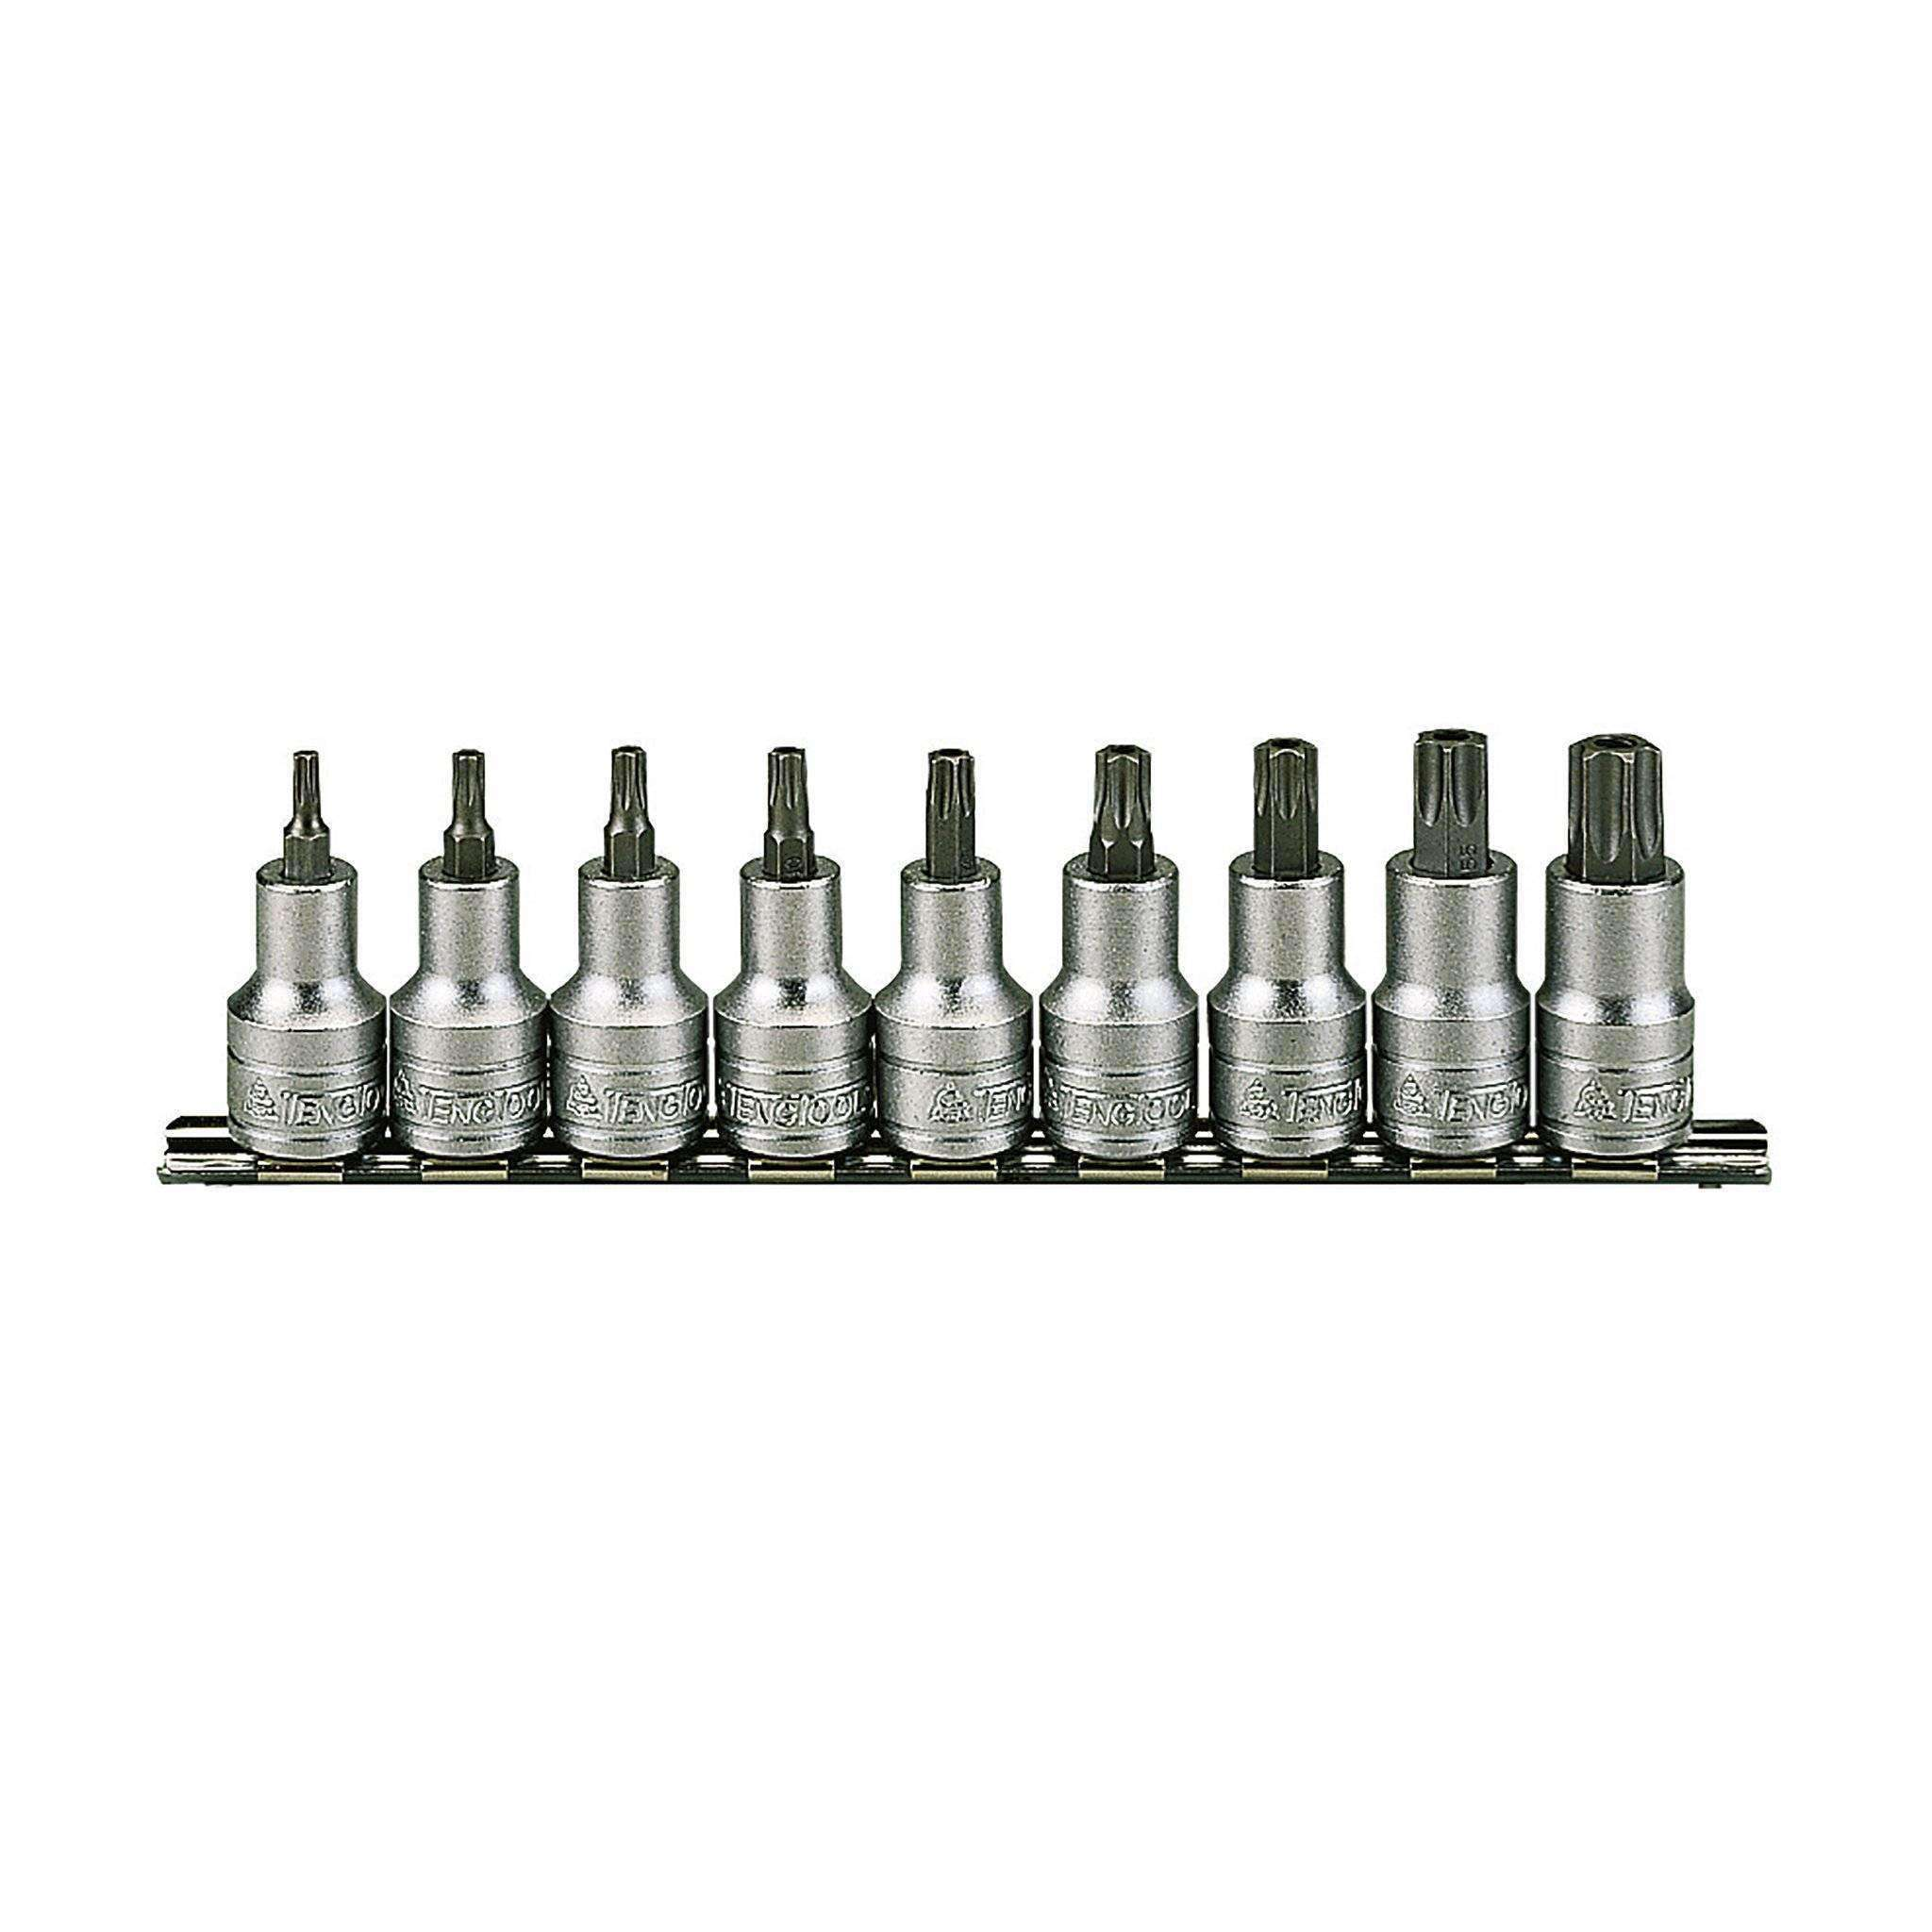 Teng Tools M1213TX - 9 Piece 1/2 Inch Drive TX Bit Socket Set Clip Rail - Teng Tools USA